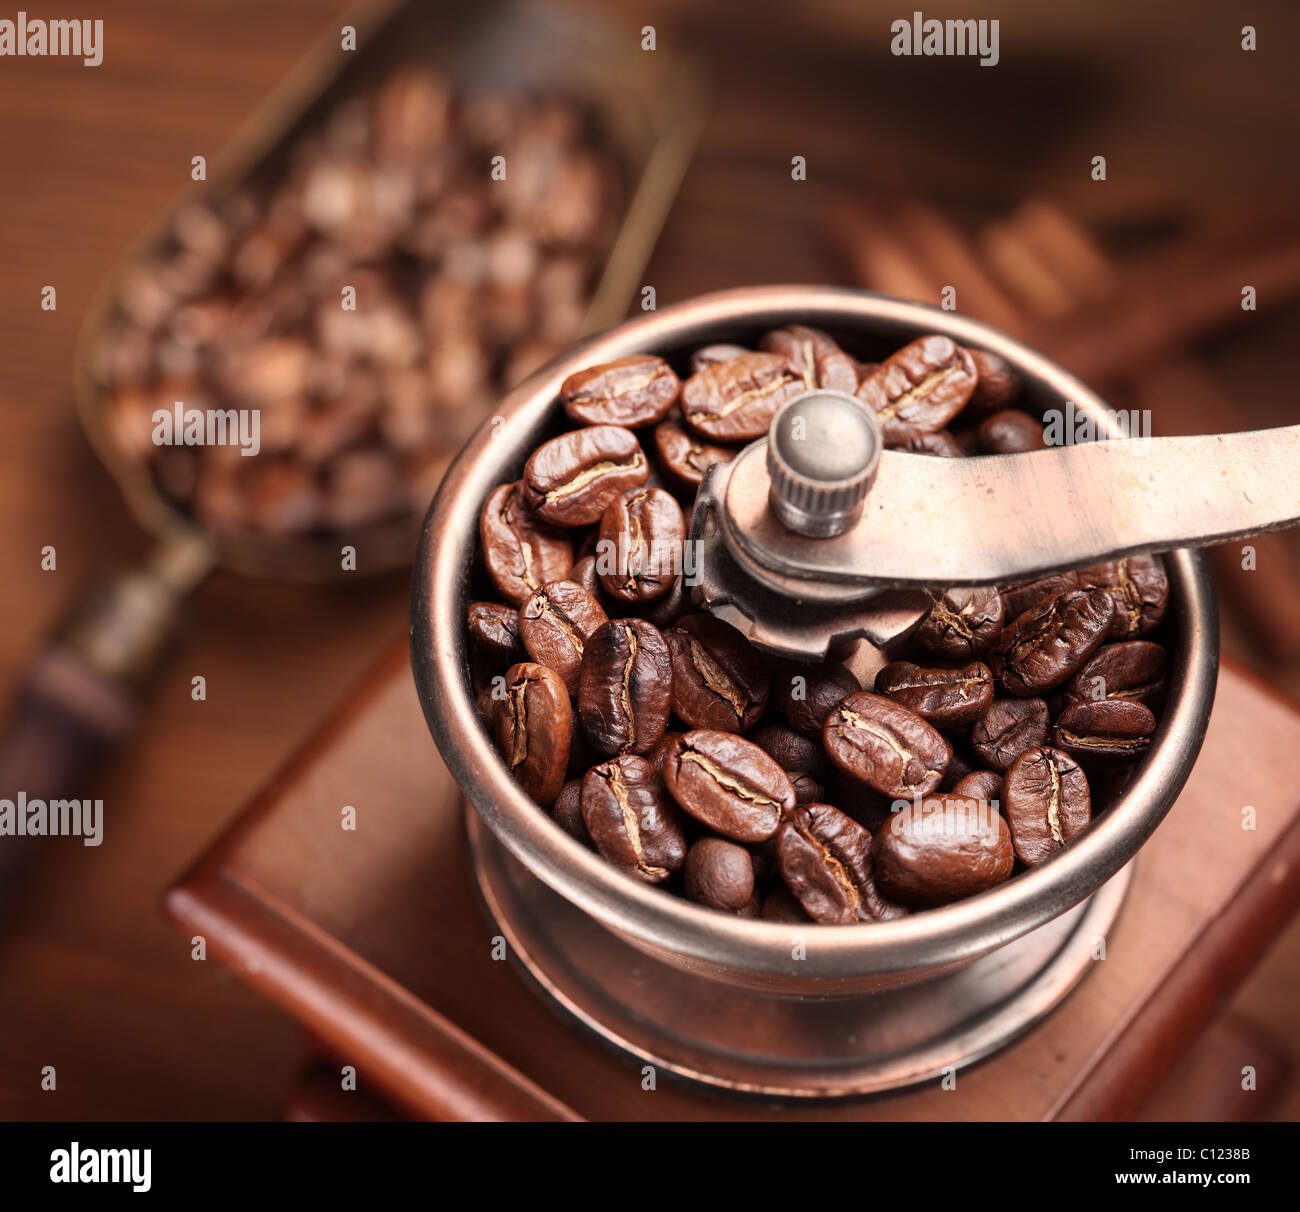 Roasted coffee beans are ground in a coffee grinder. - Stock Image